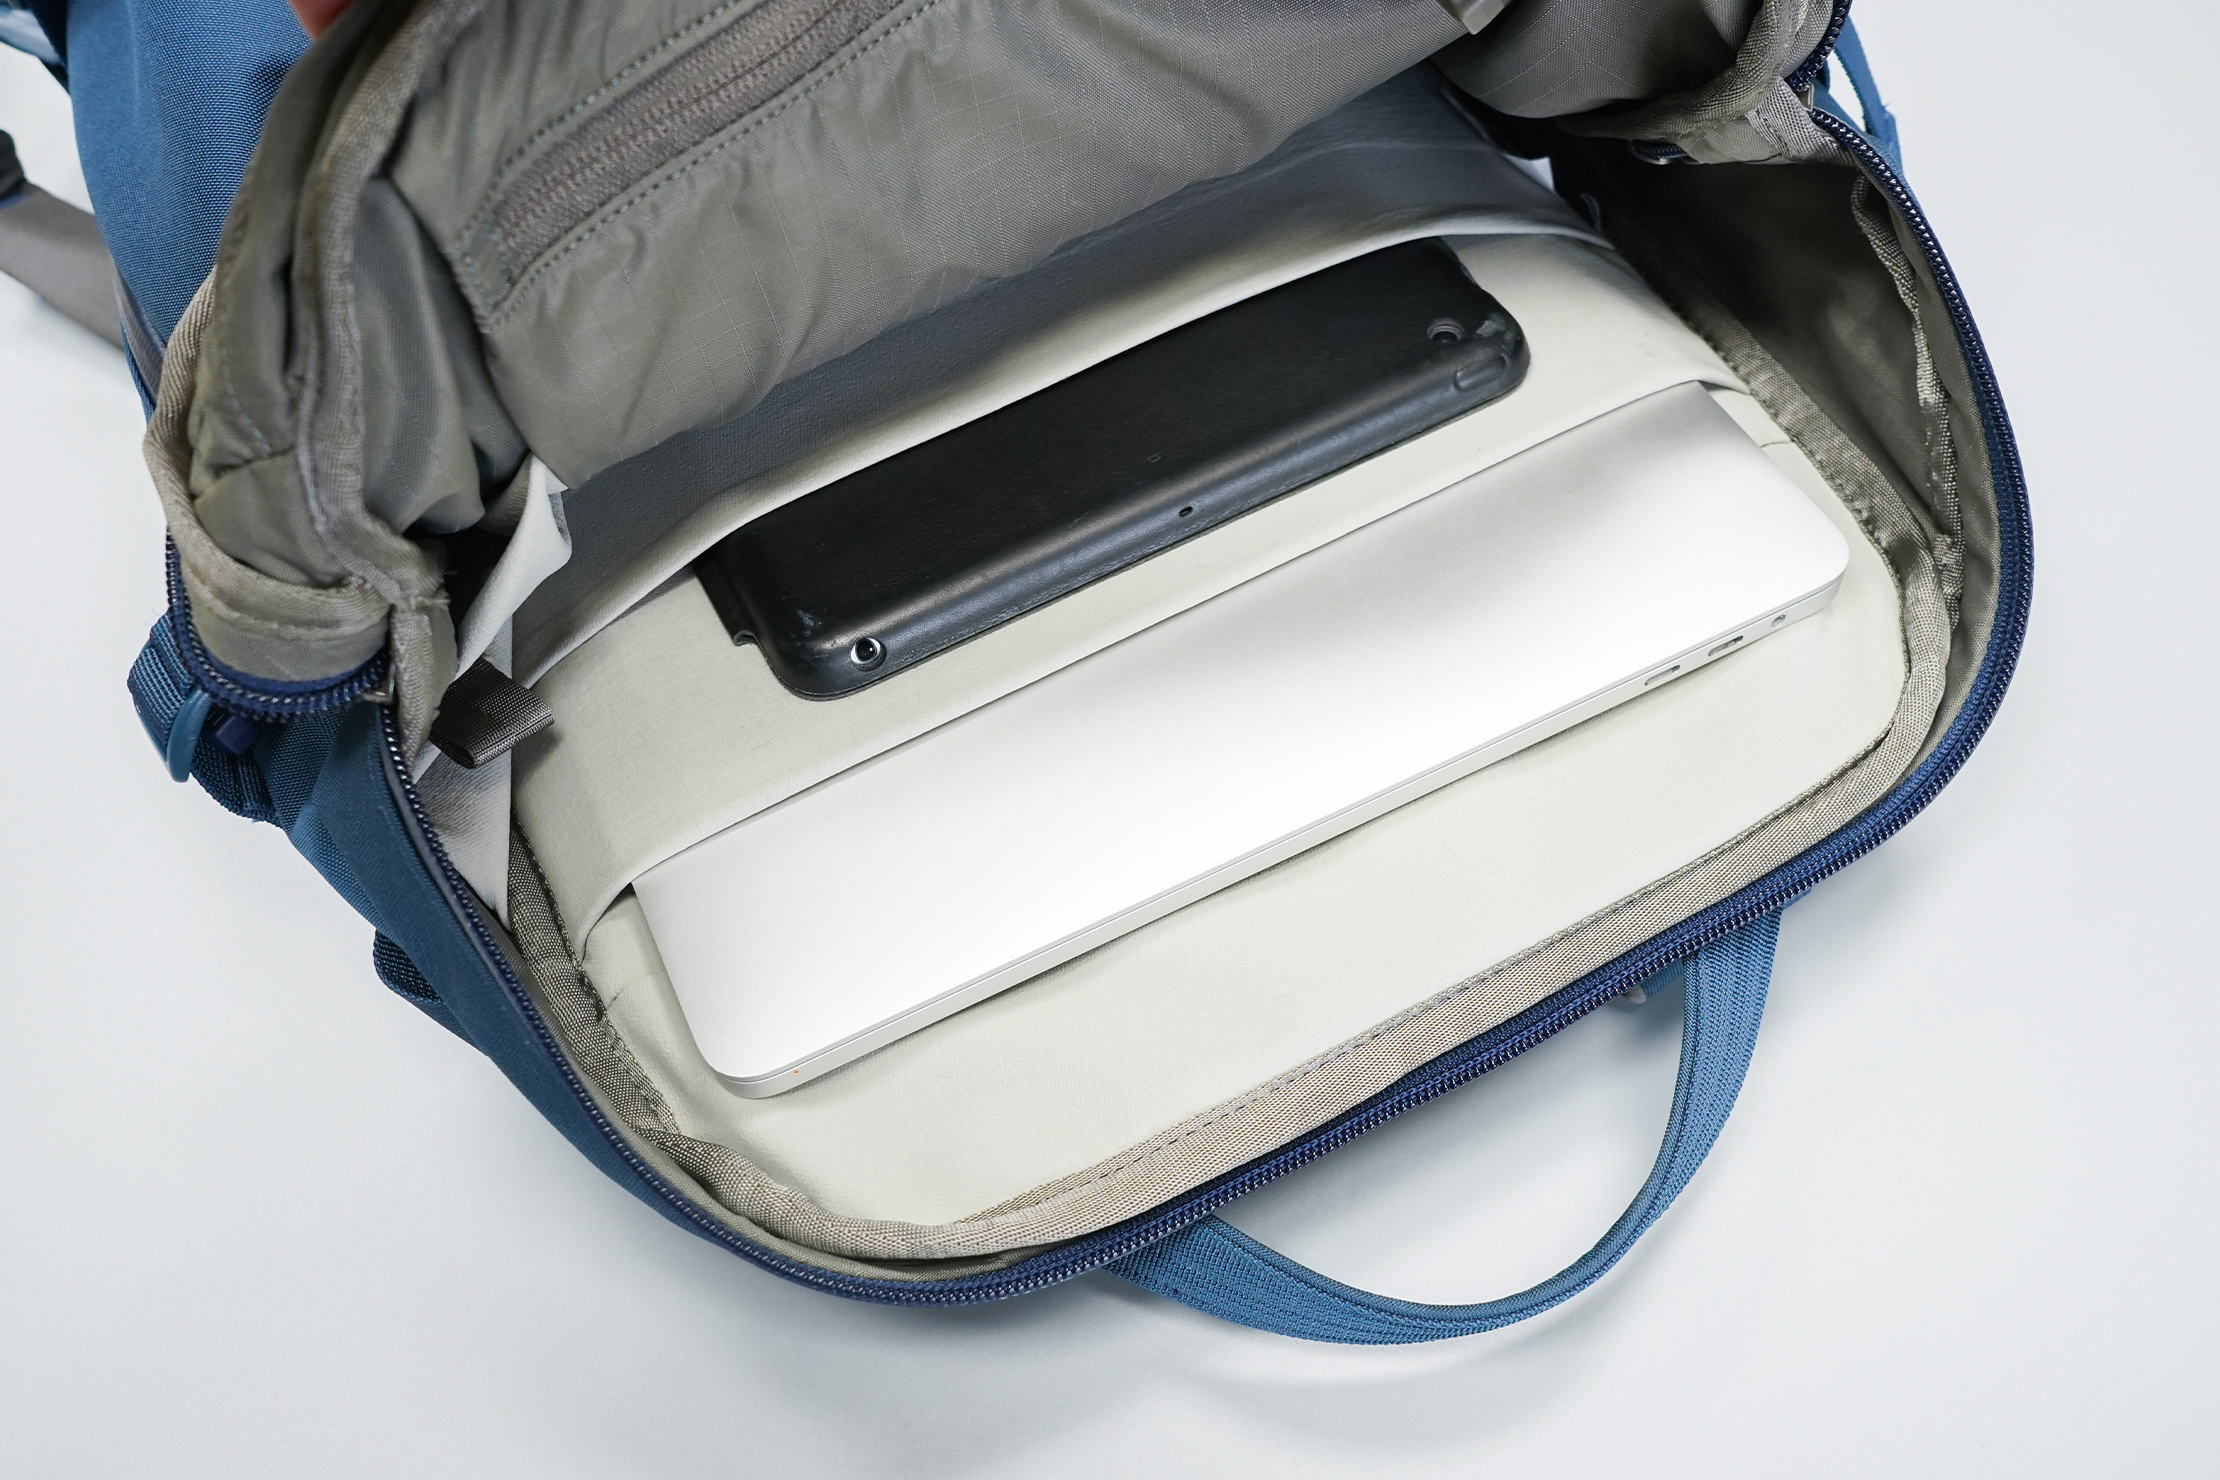 YETI Crossroads 22L Backpack | Laptop Compartment